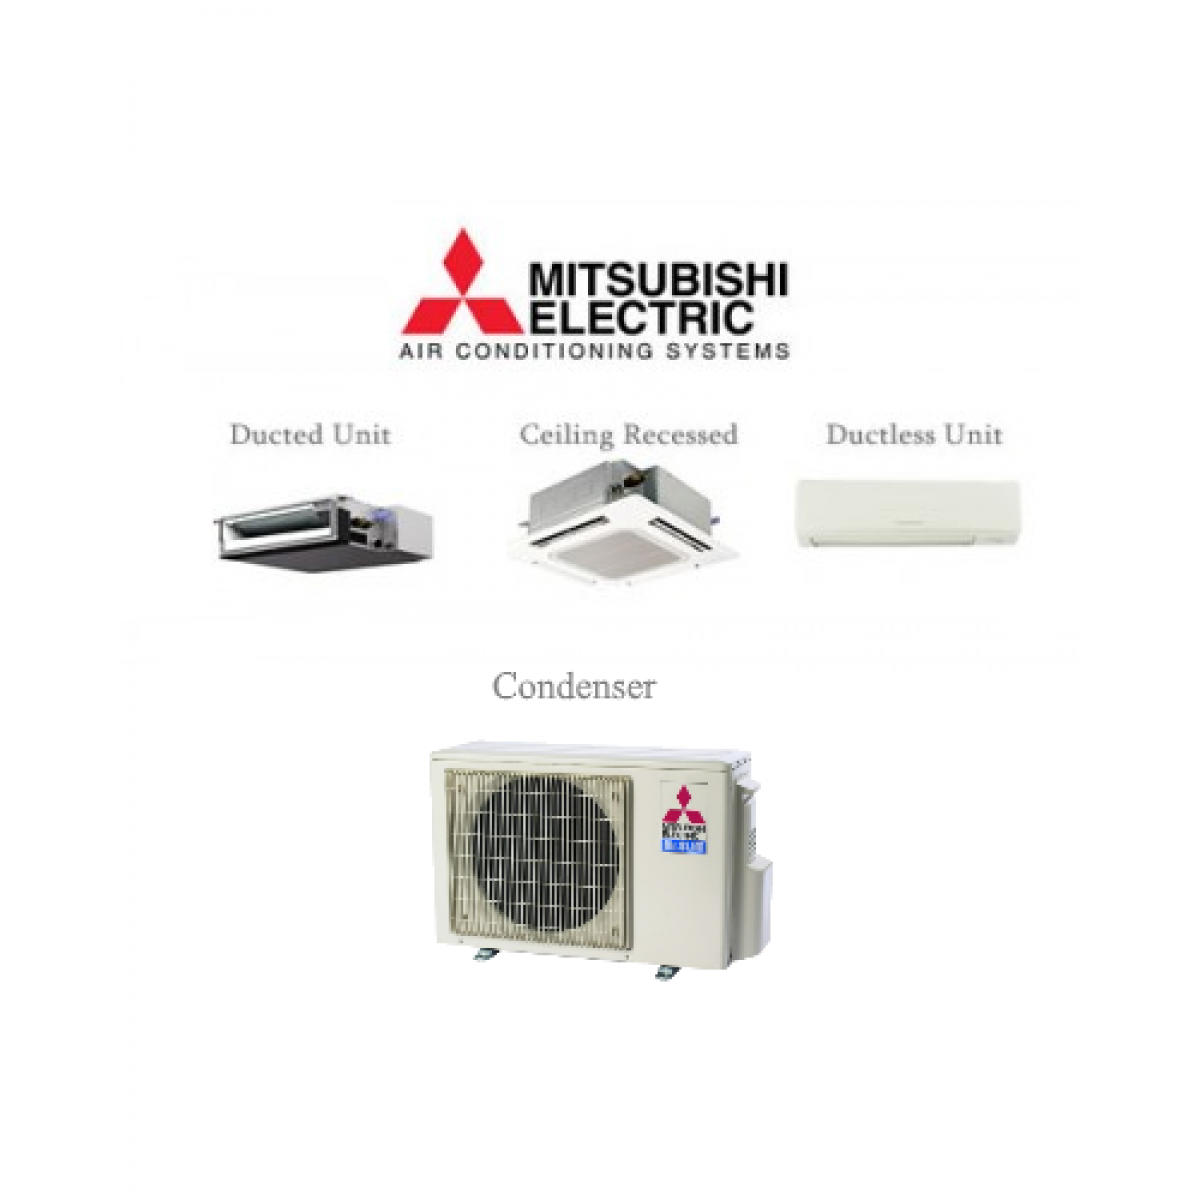 Mitsubishi P Series 18 000 Btu Ductless Heat Pump Air